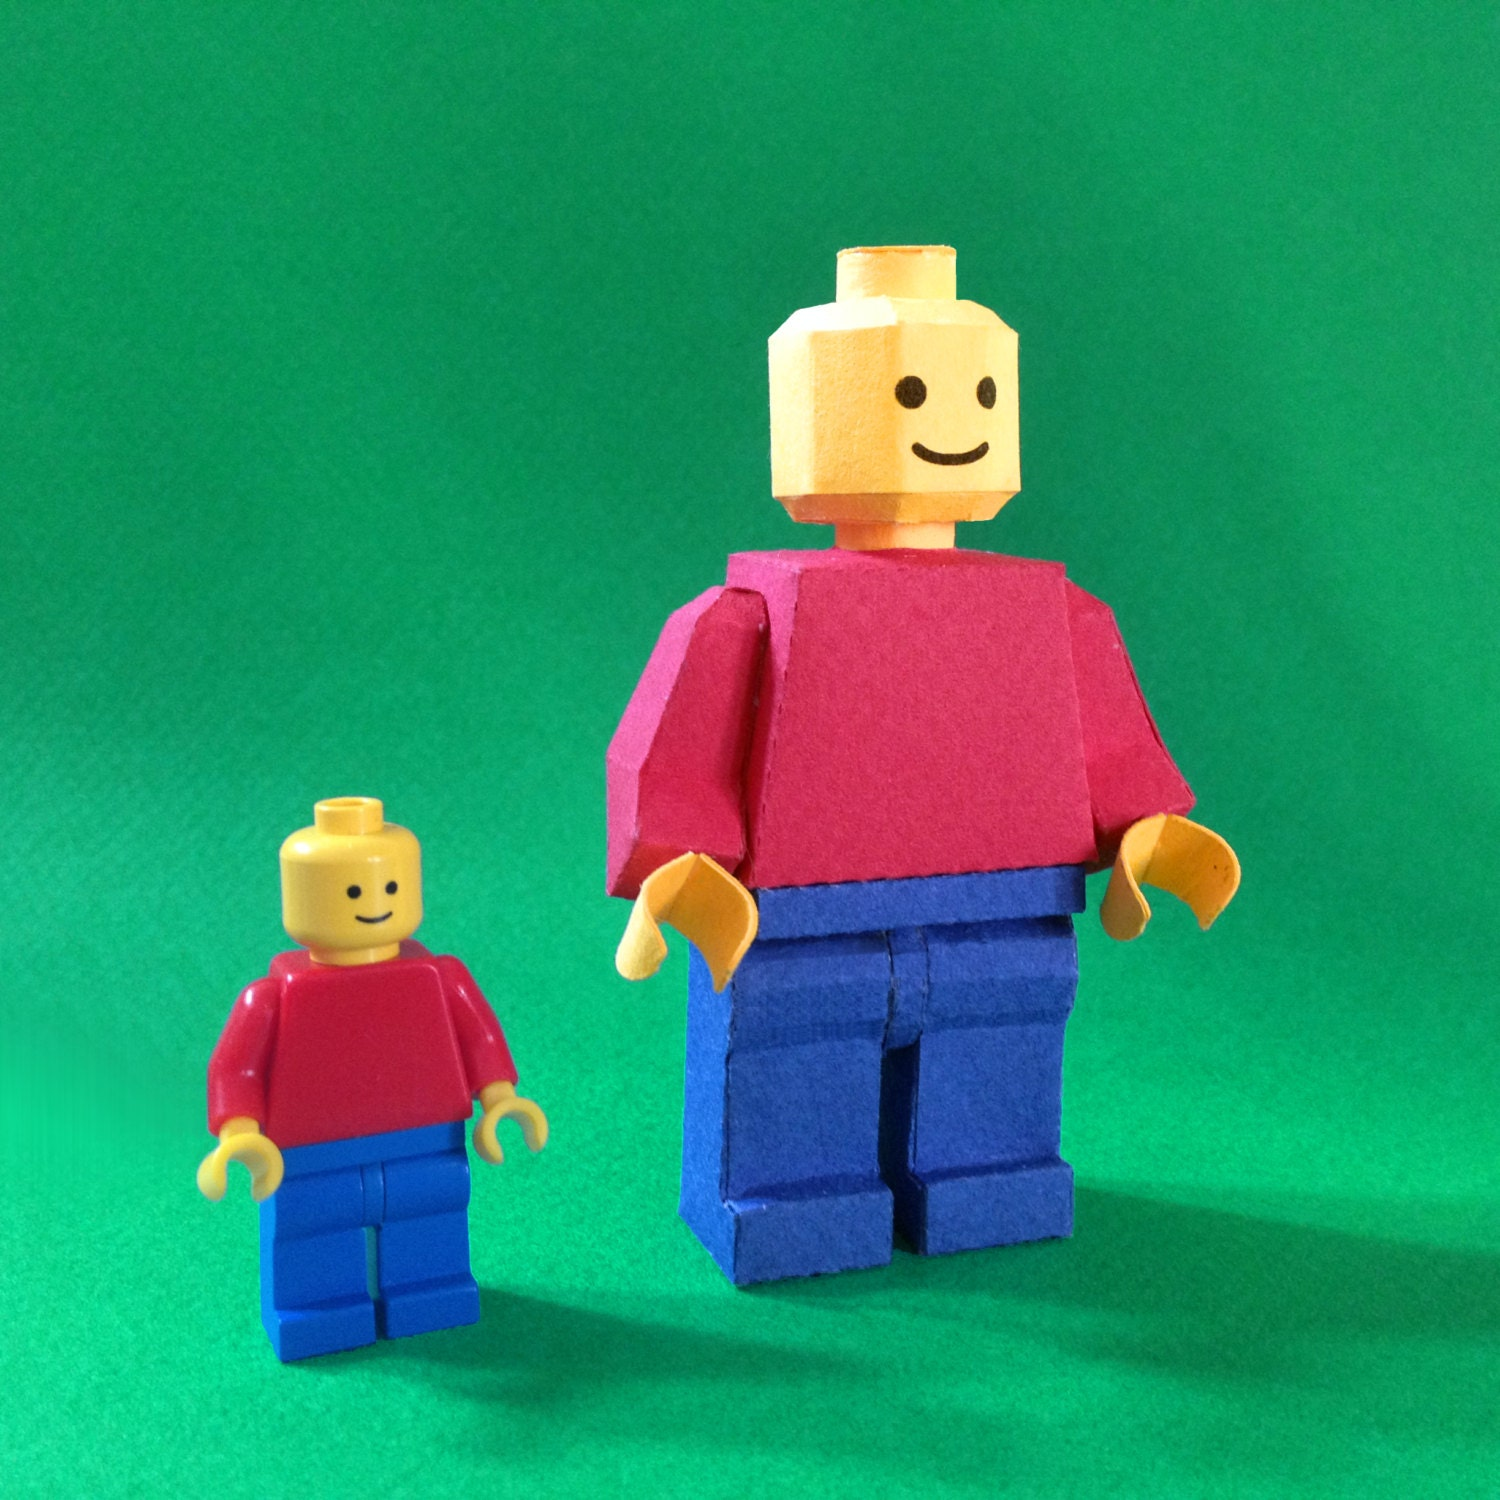 This is a picture of Exceptional Lego Minifigure Printable